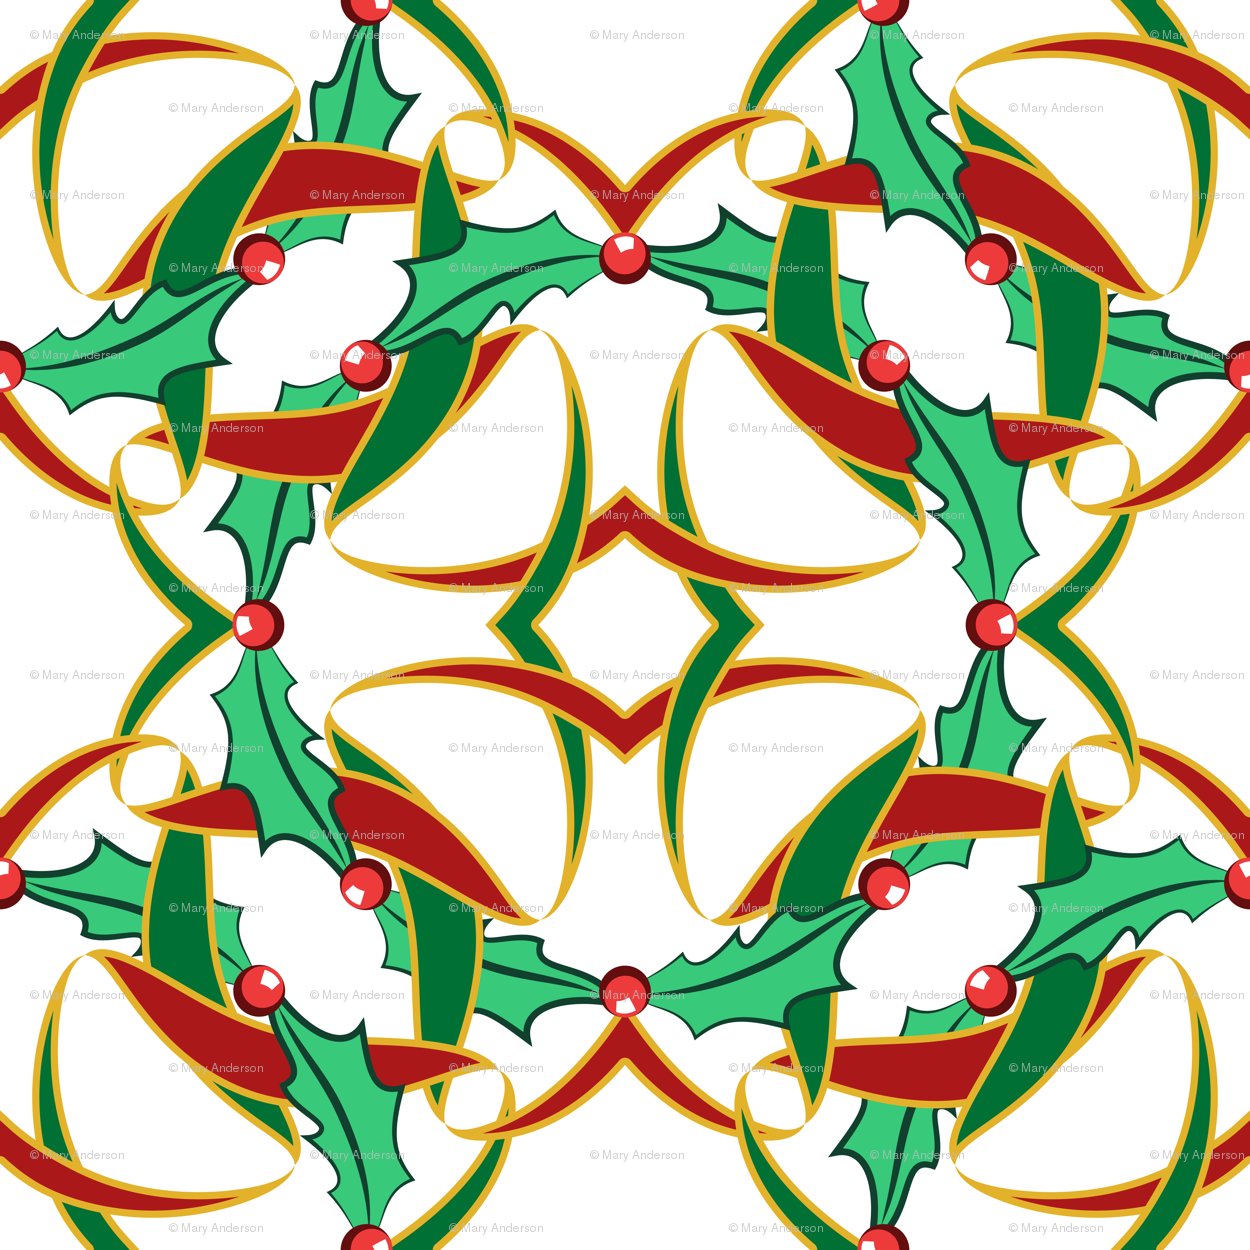 Celt clipart wreath On anderson_designs Celtic Christmas White